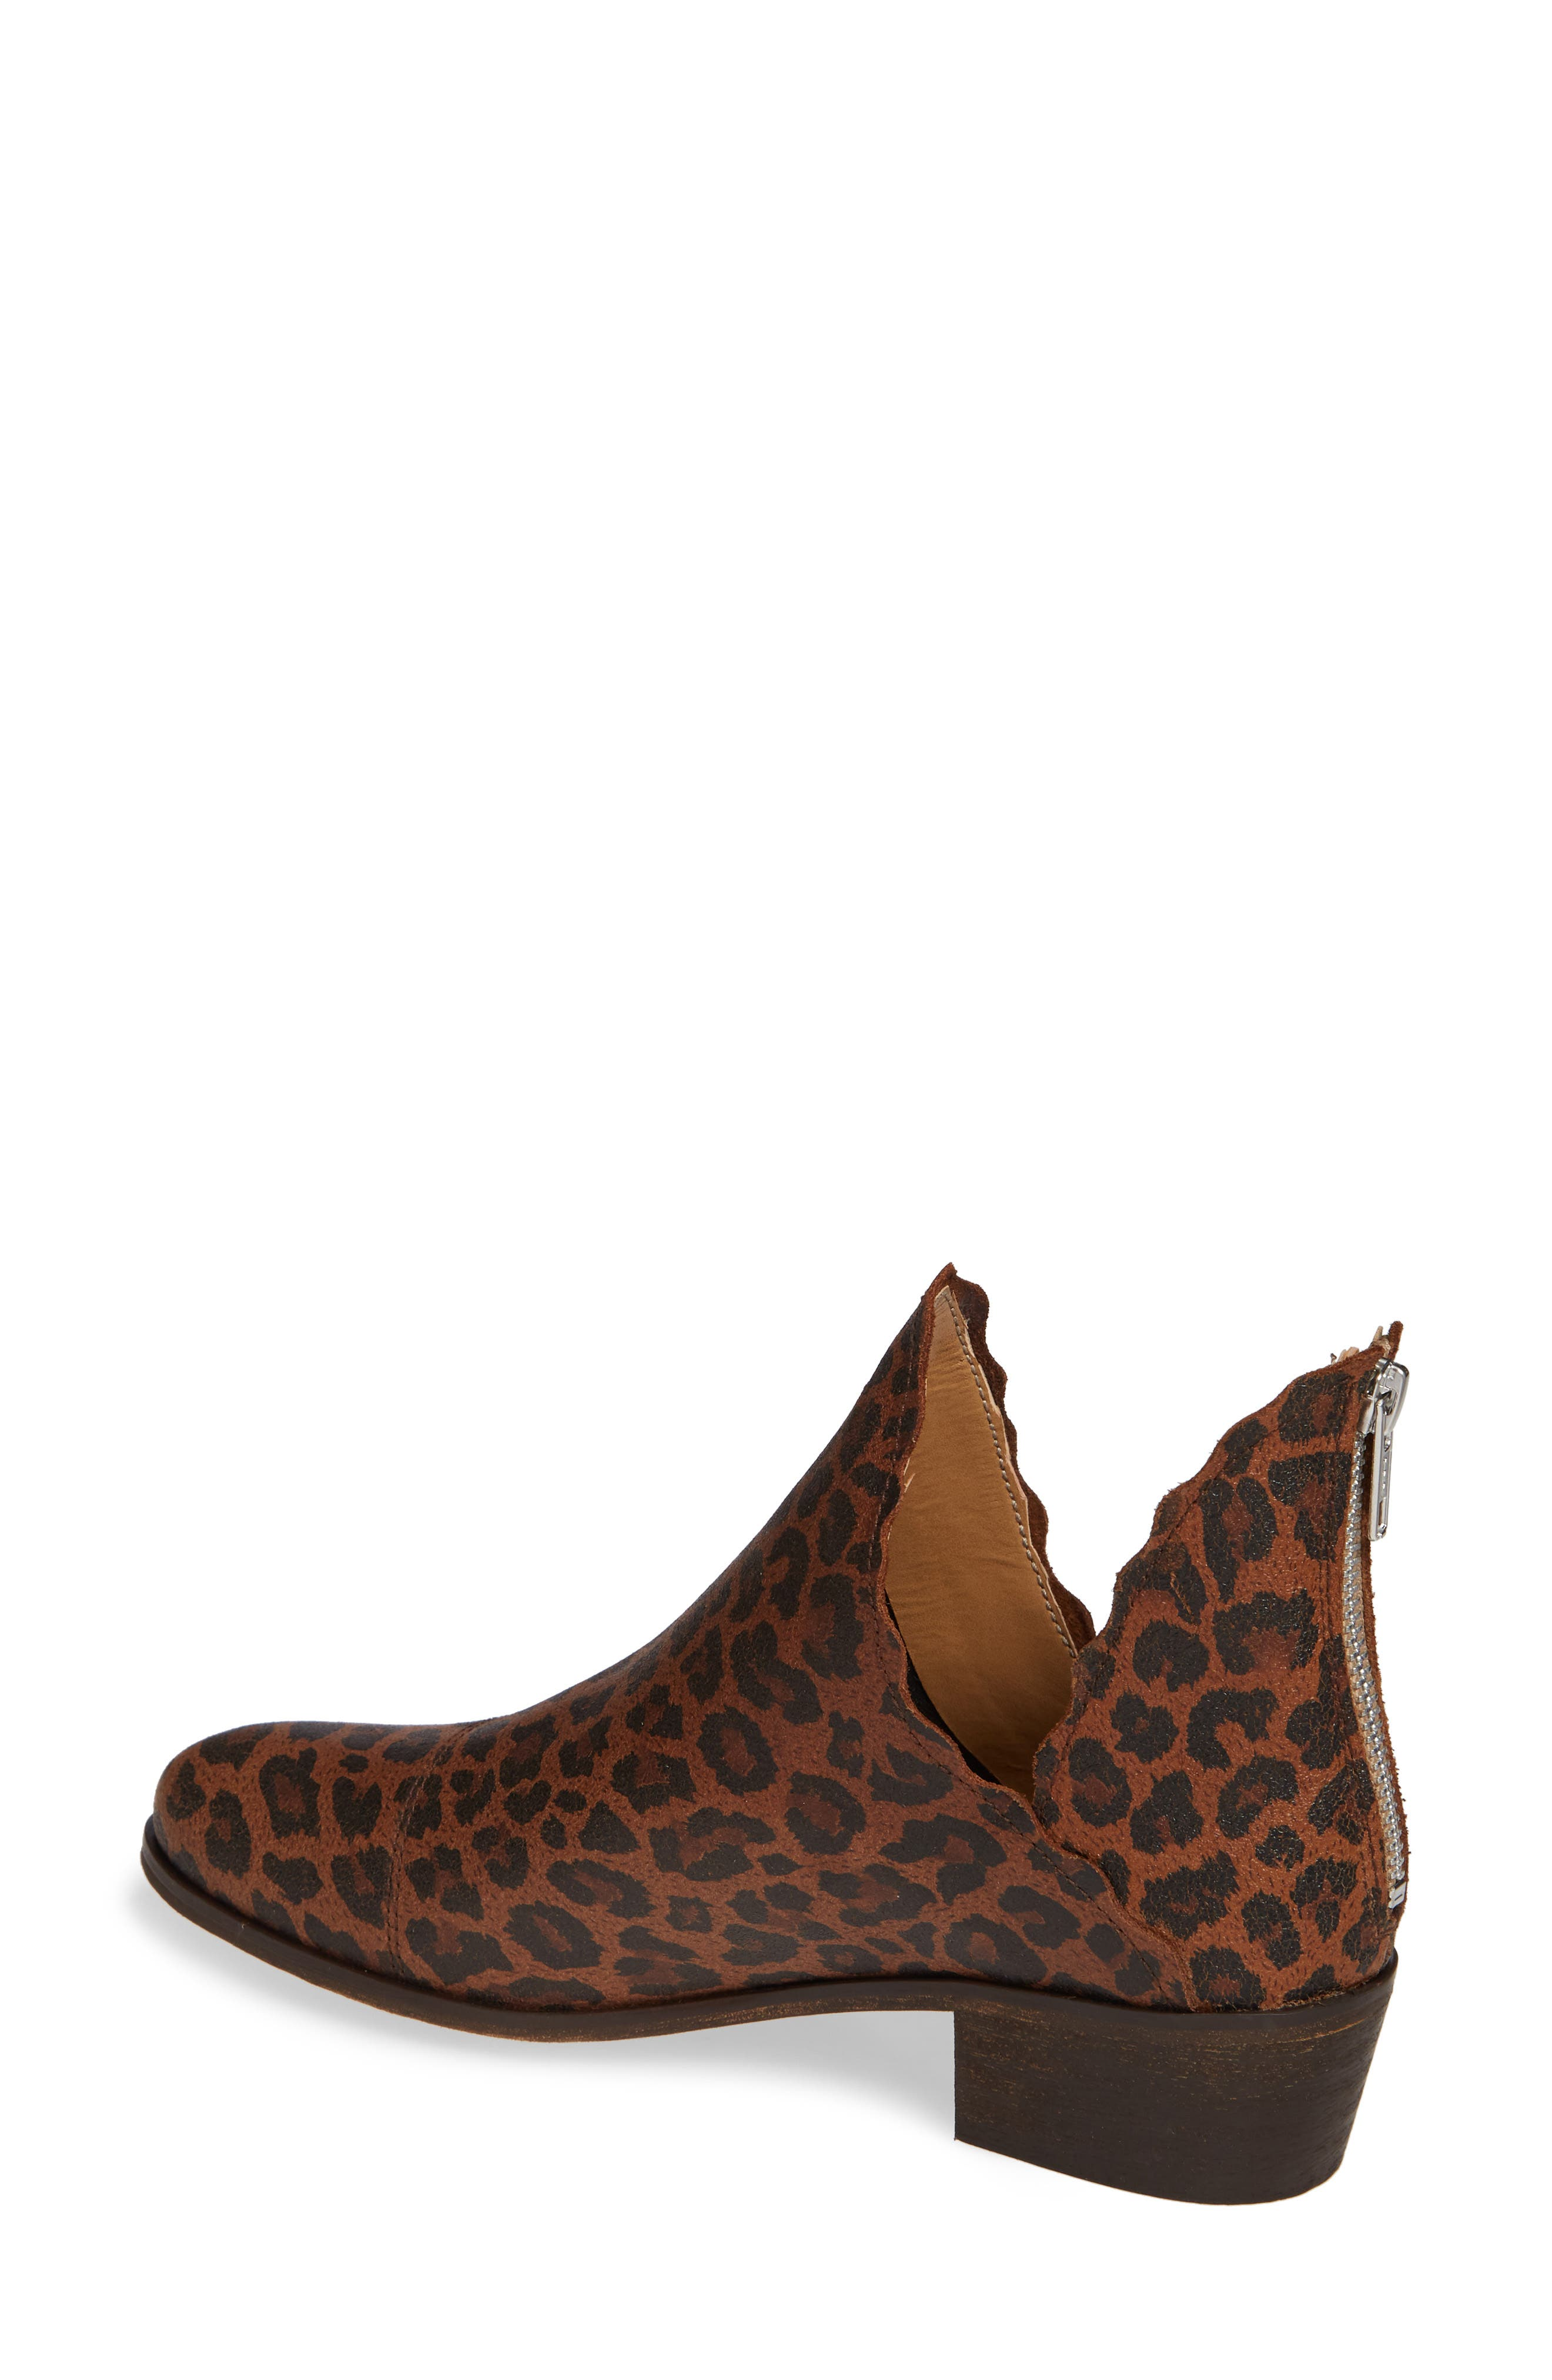 KLUB NICO, Bae Scalloped Bootie, Alternate thumbnail 2, color, LEOPARD SUEDE